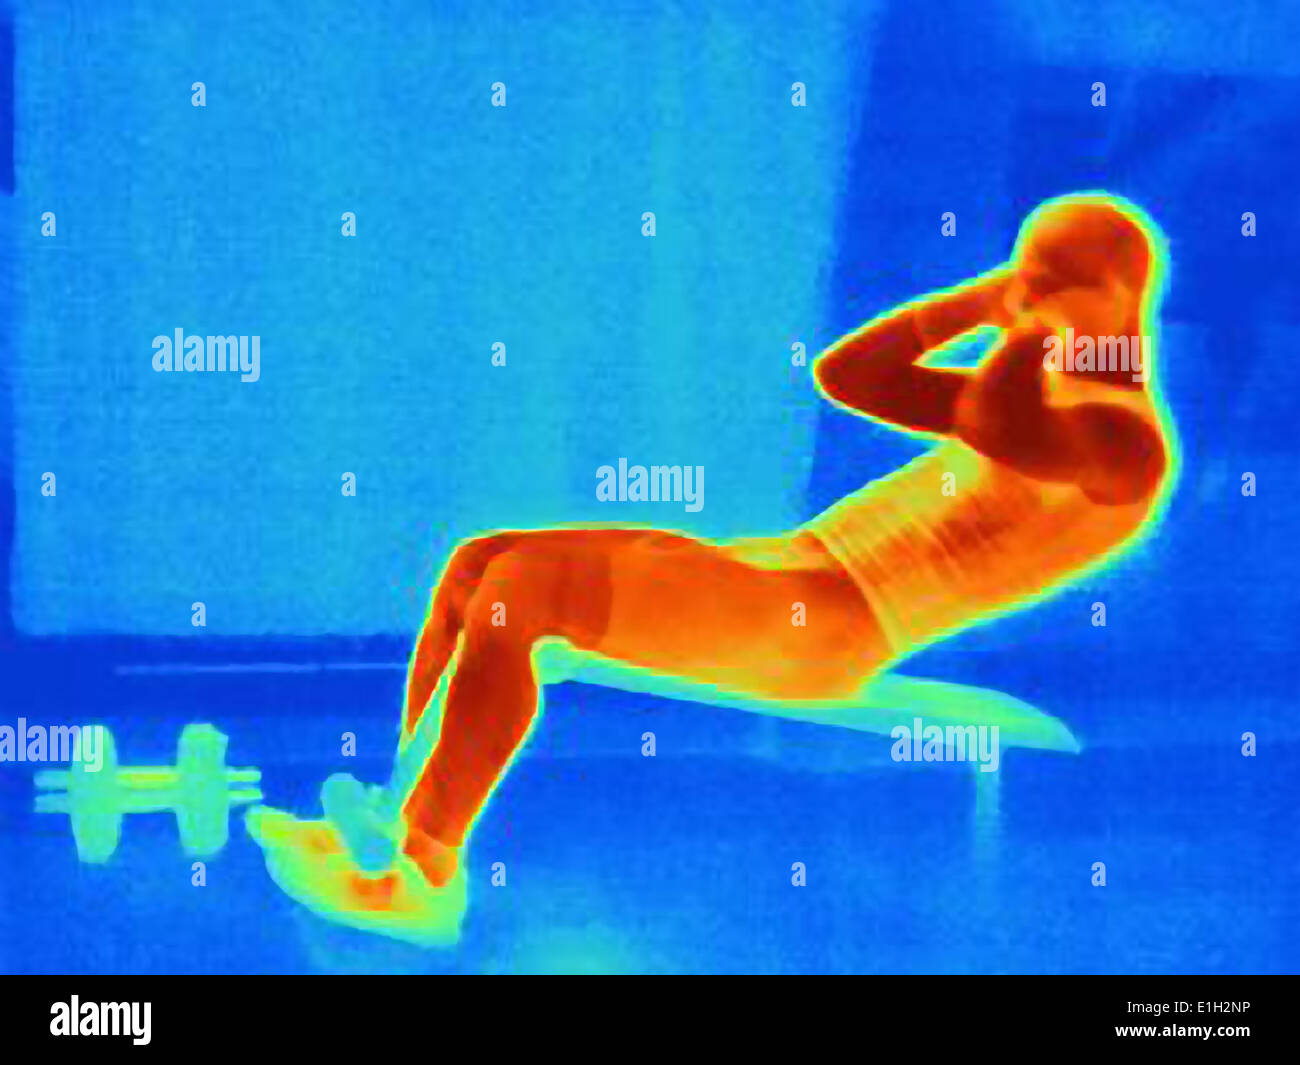 Thermal image of young man doing pull ups on weight bench. The image shows the heat produced by the muscles - Stock Image